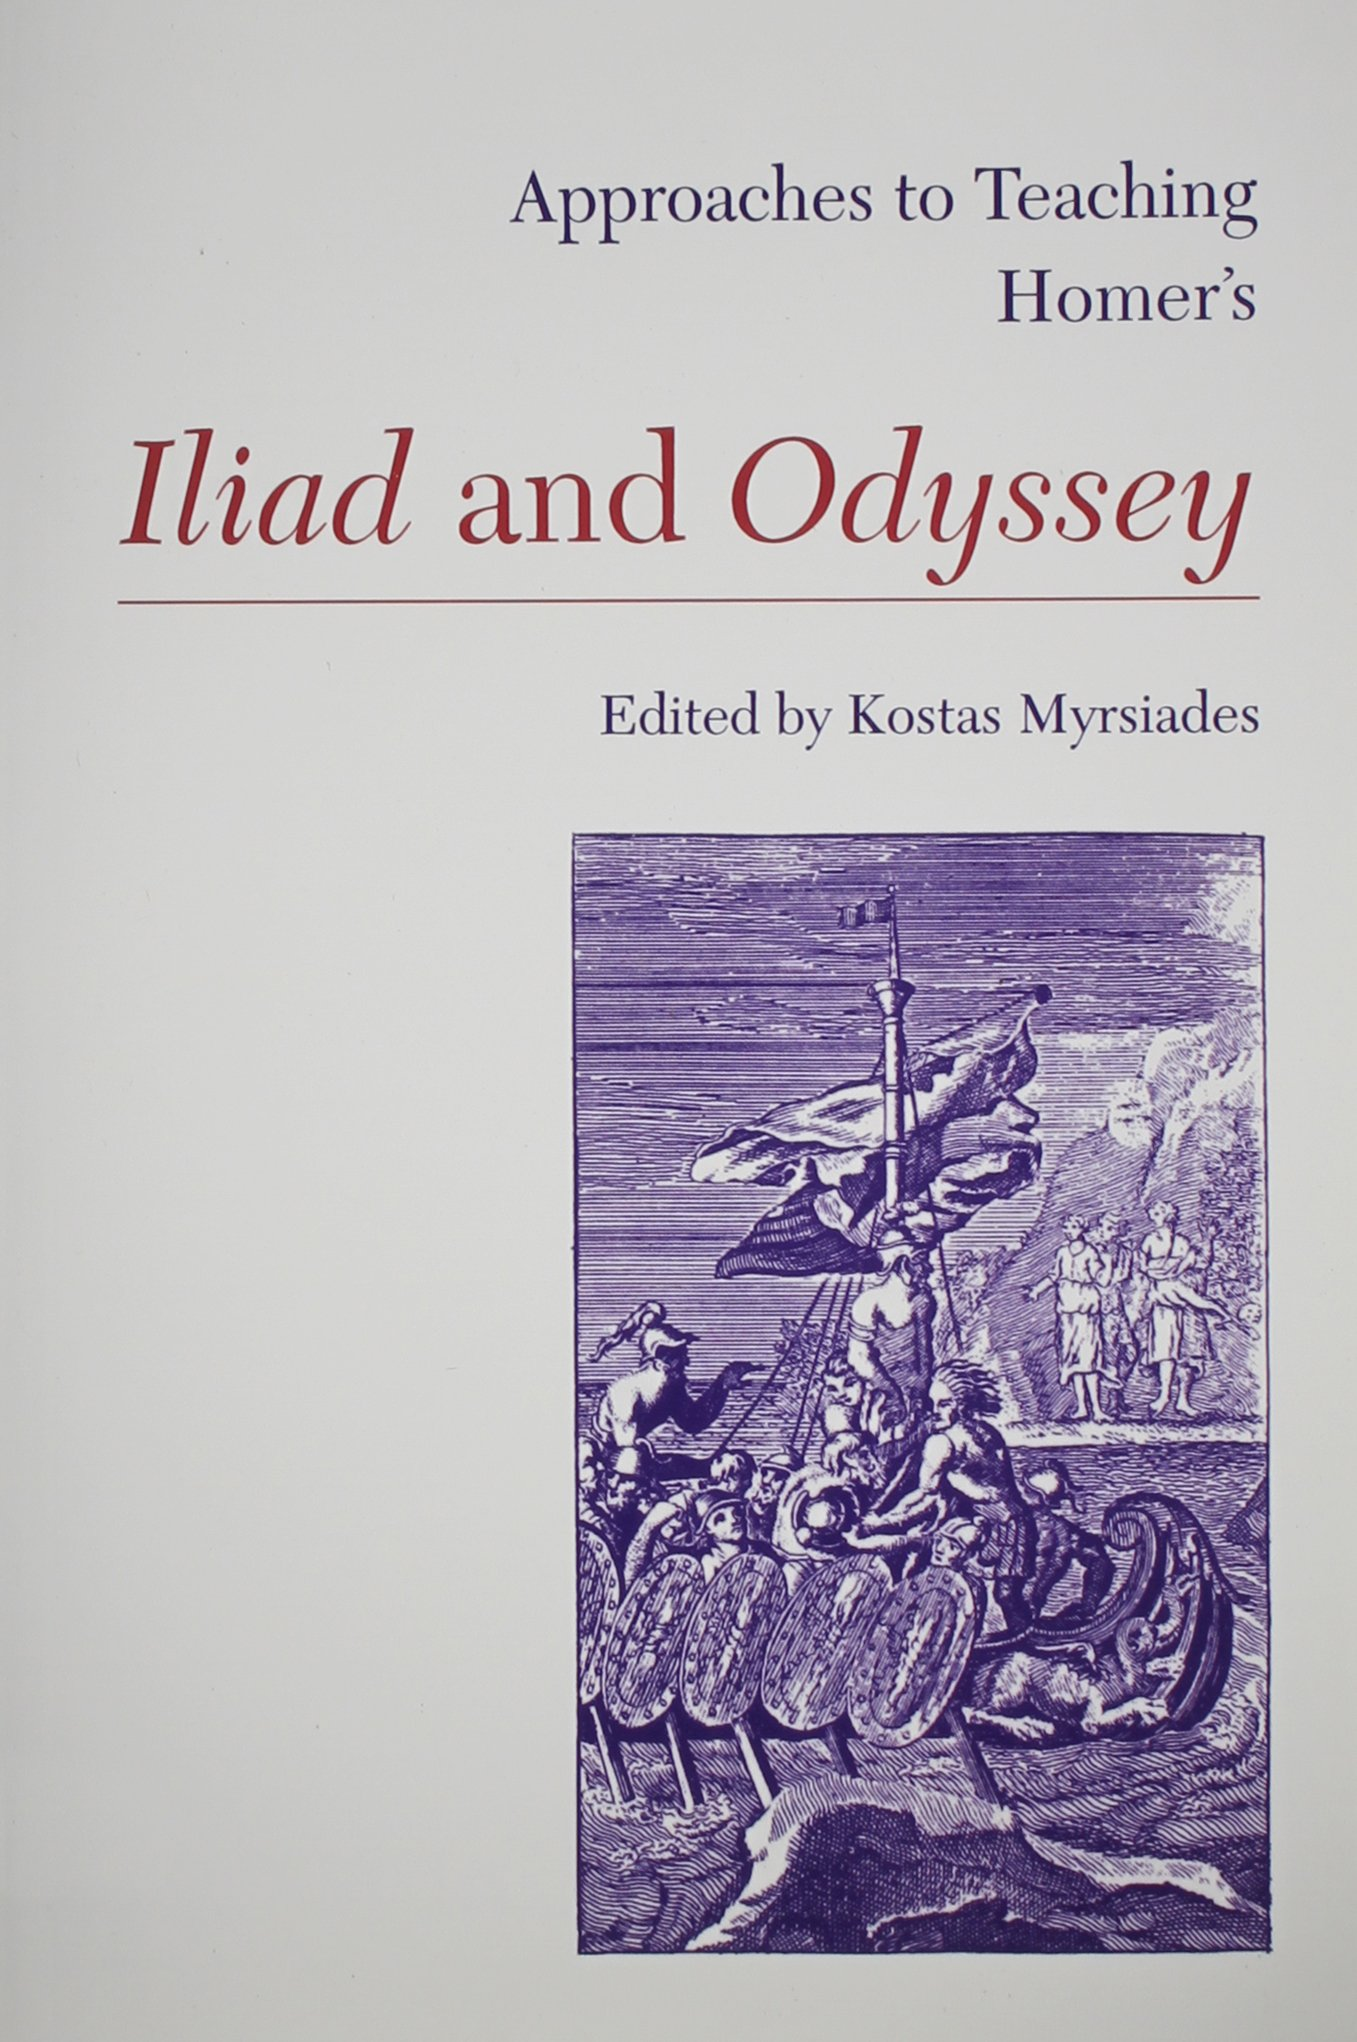 Approaches to Teaching Homer's Iliad and Odyssey (Approaches to Teaching World Literature, 13) (Approaches to Teaching World Literature (Hardcover)) by Brand: Modern Language Assn of Amer